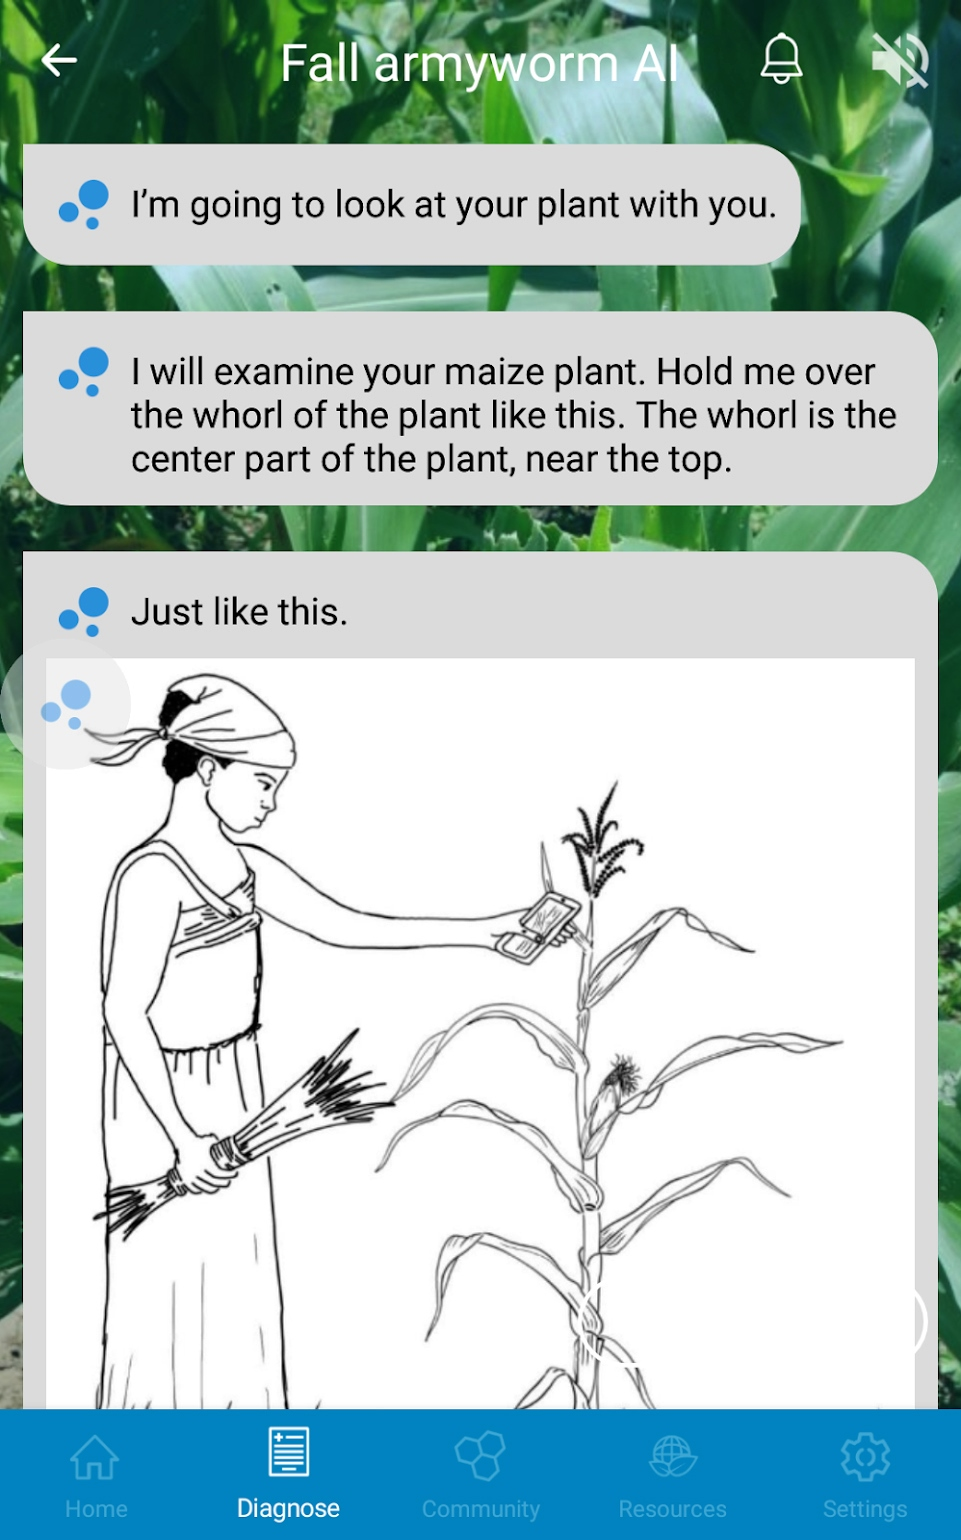 Machine-learning app to fight invasive crop pest in Africa